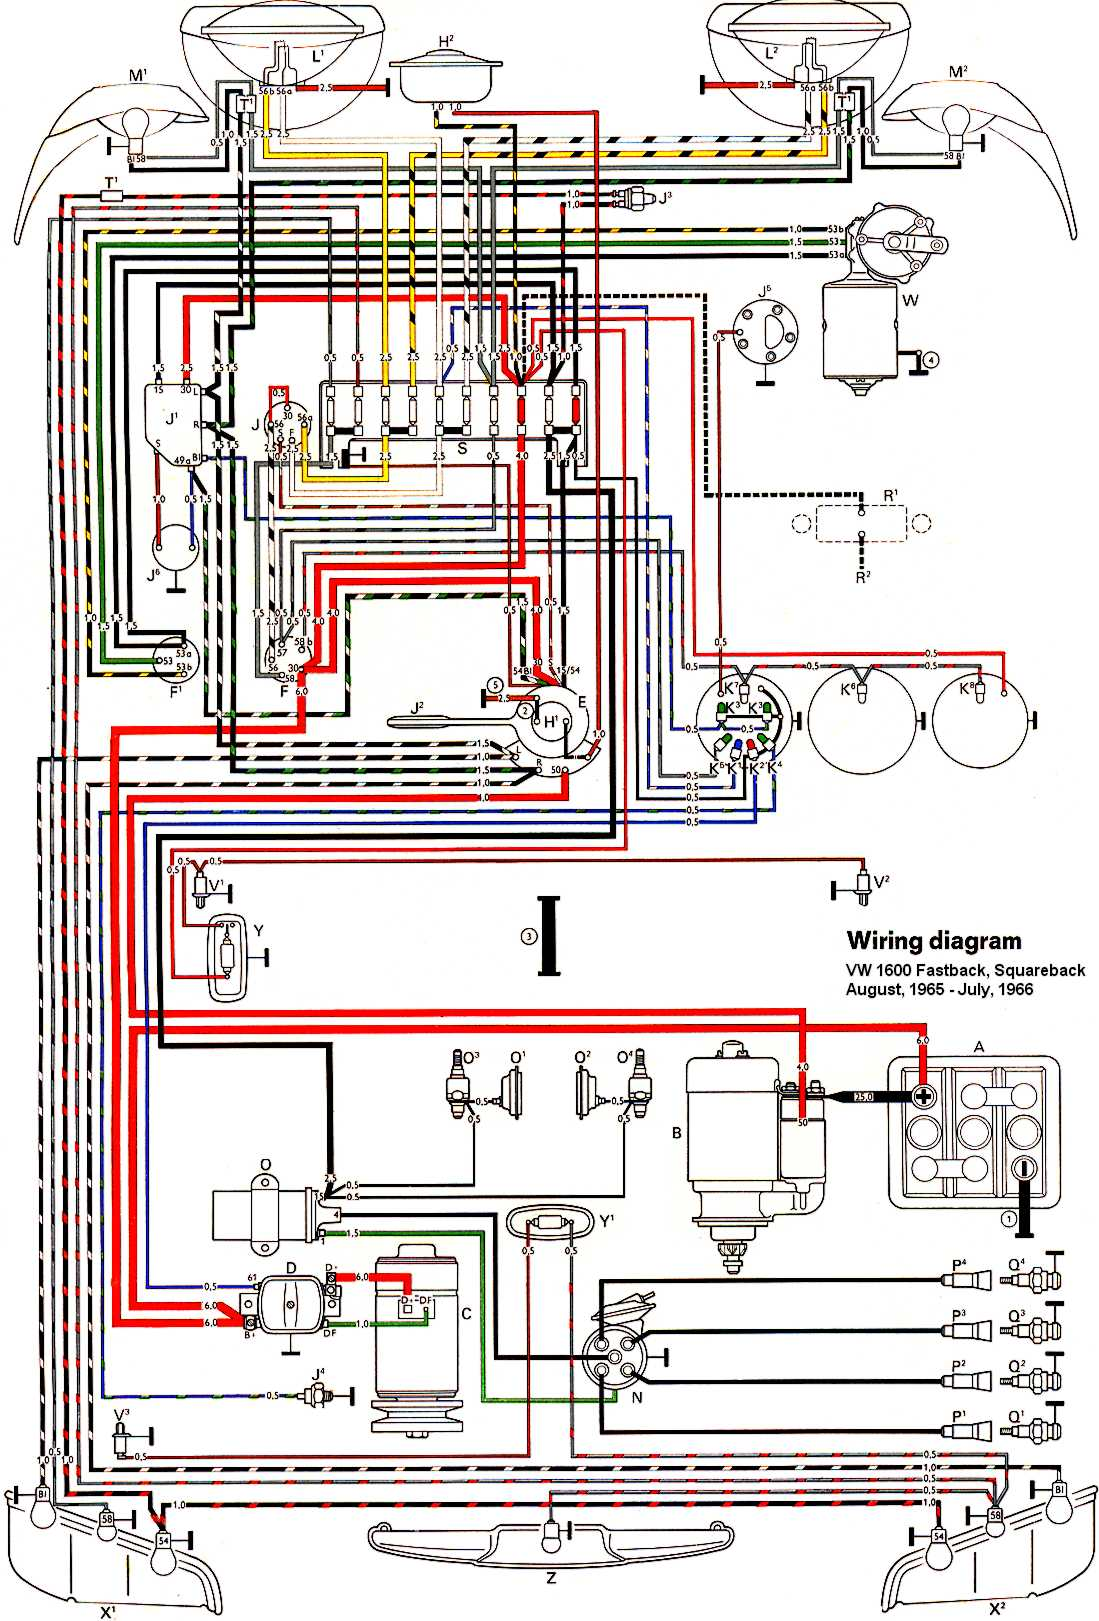 thesamba.com :: type 3 wiring diagrams 1999 volkswagen beetle engine diagram